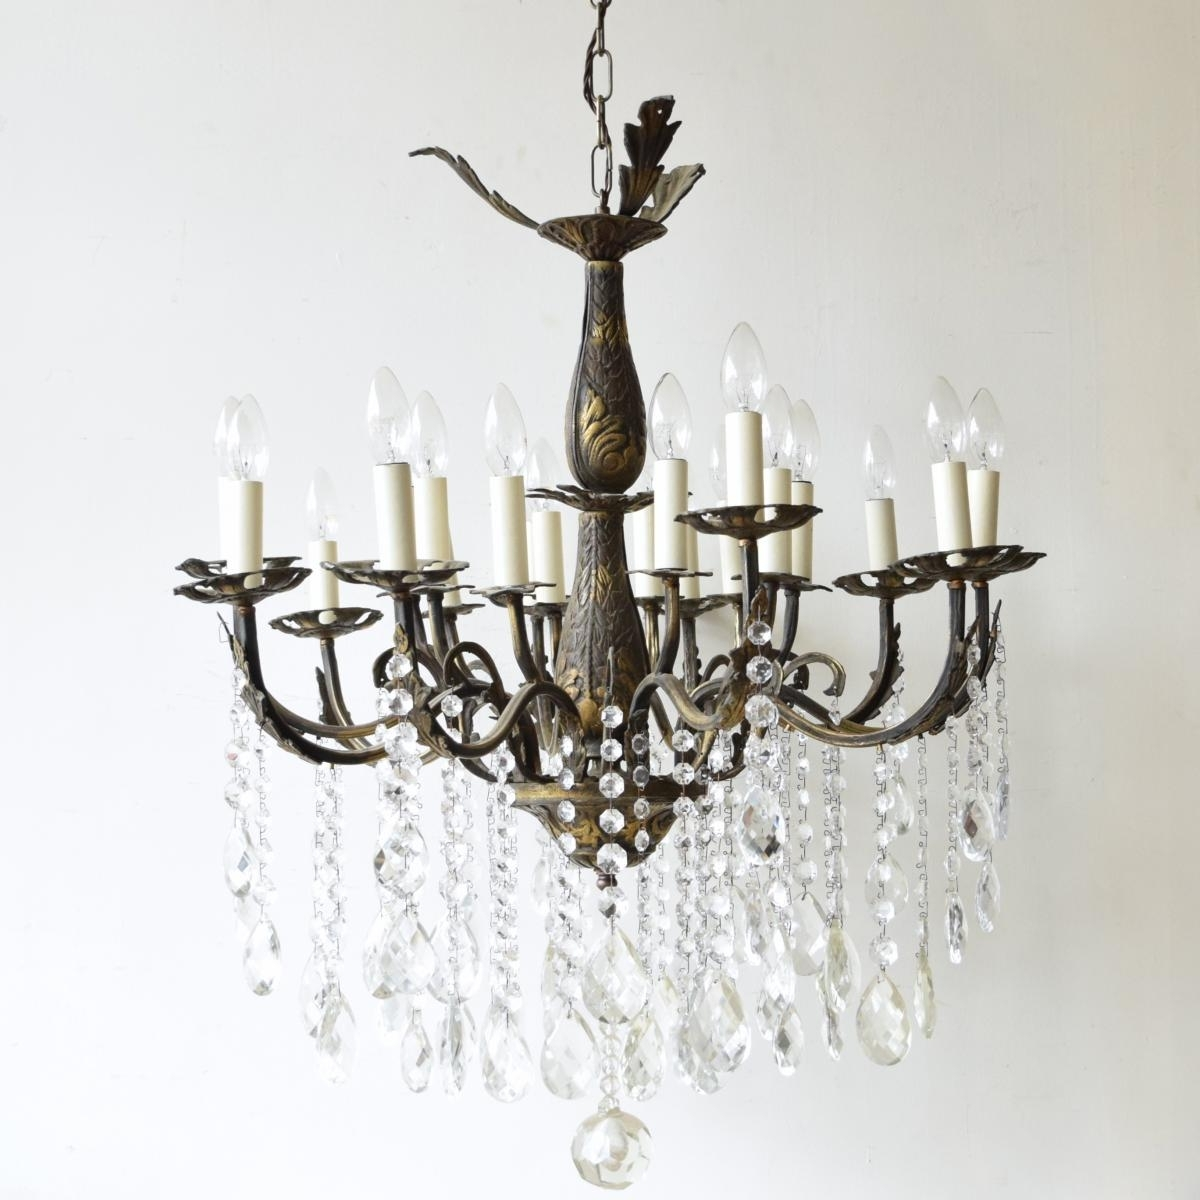 Chandeliers Vintage With Well Known Large Vintage French 16 Light Brass Chandelier For Sale At Pamono (View 6 of 15)